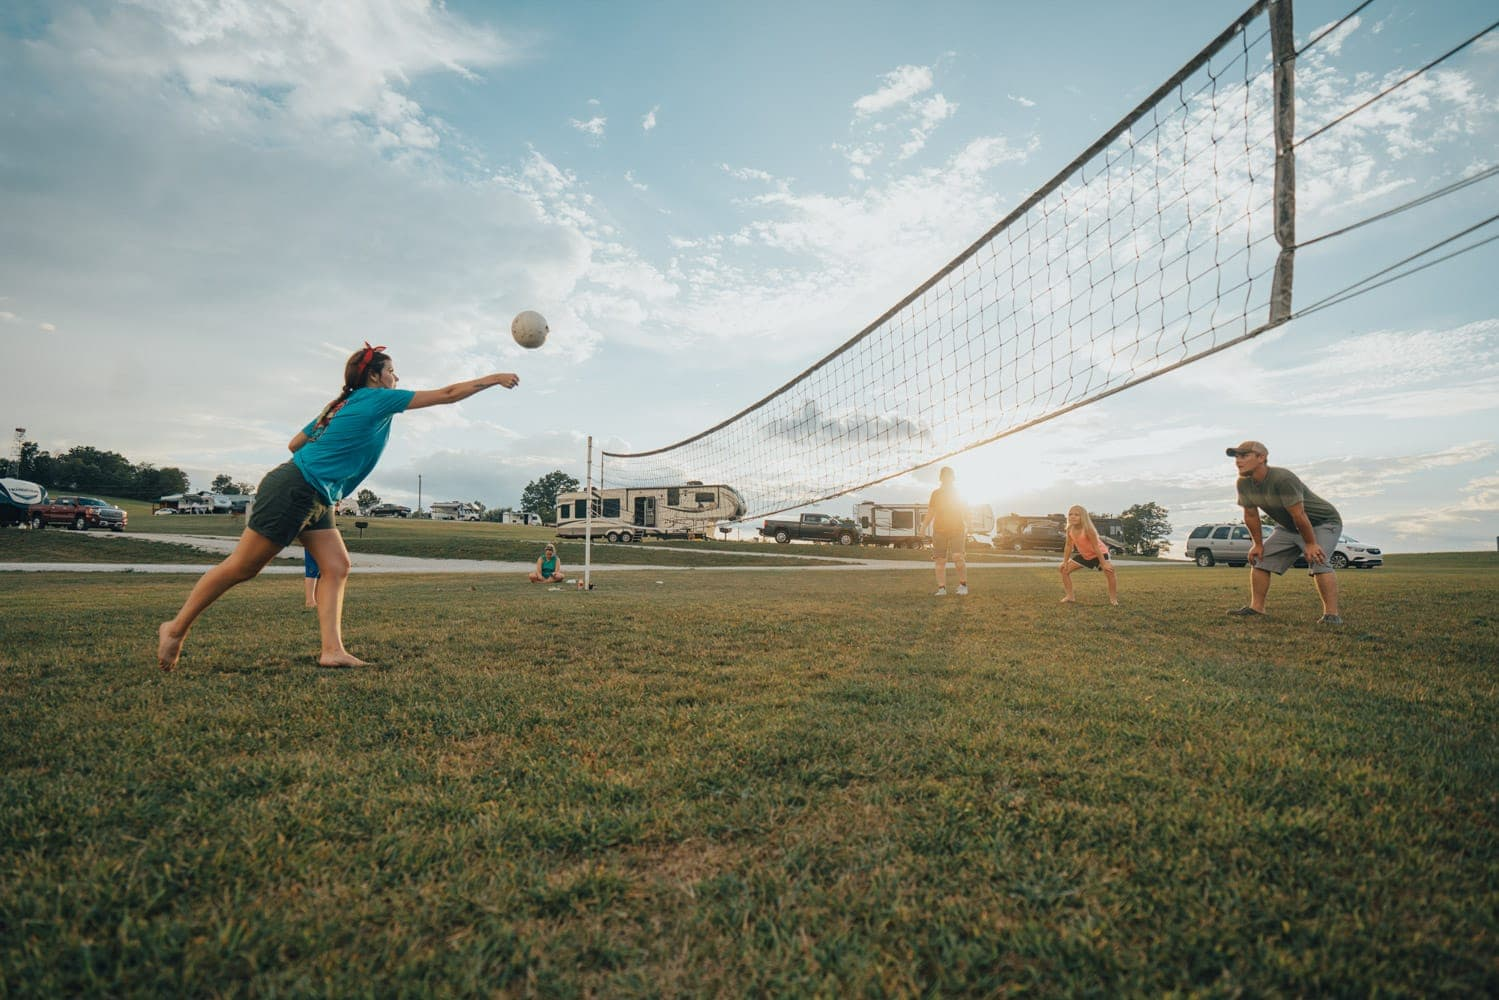 Enjoy a game of volleyball with the family at our RV park.